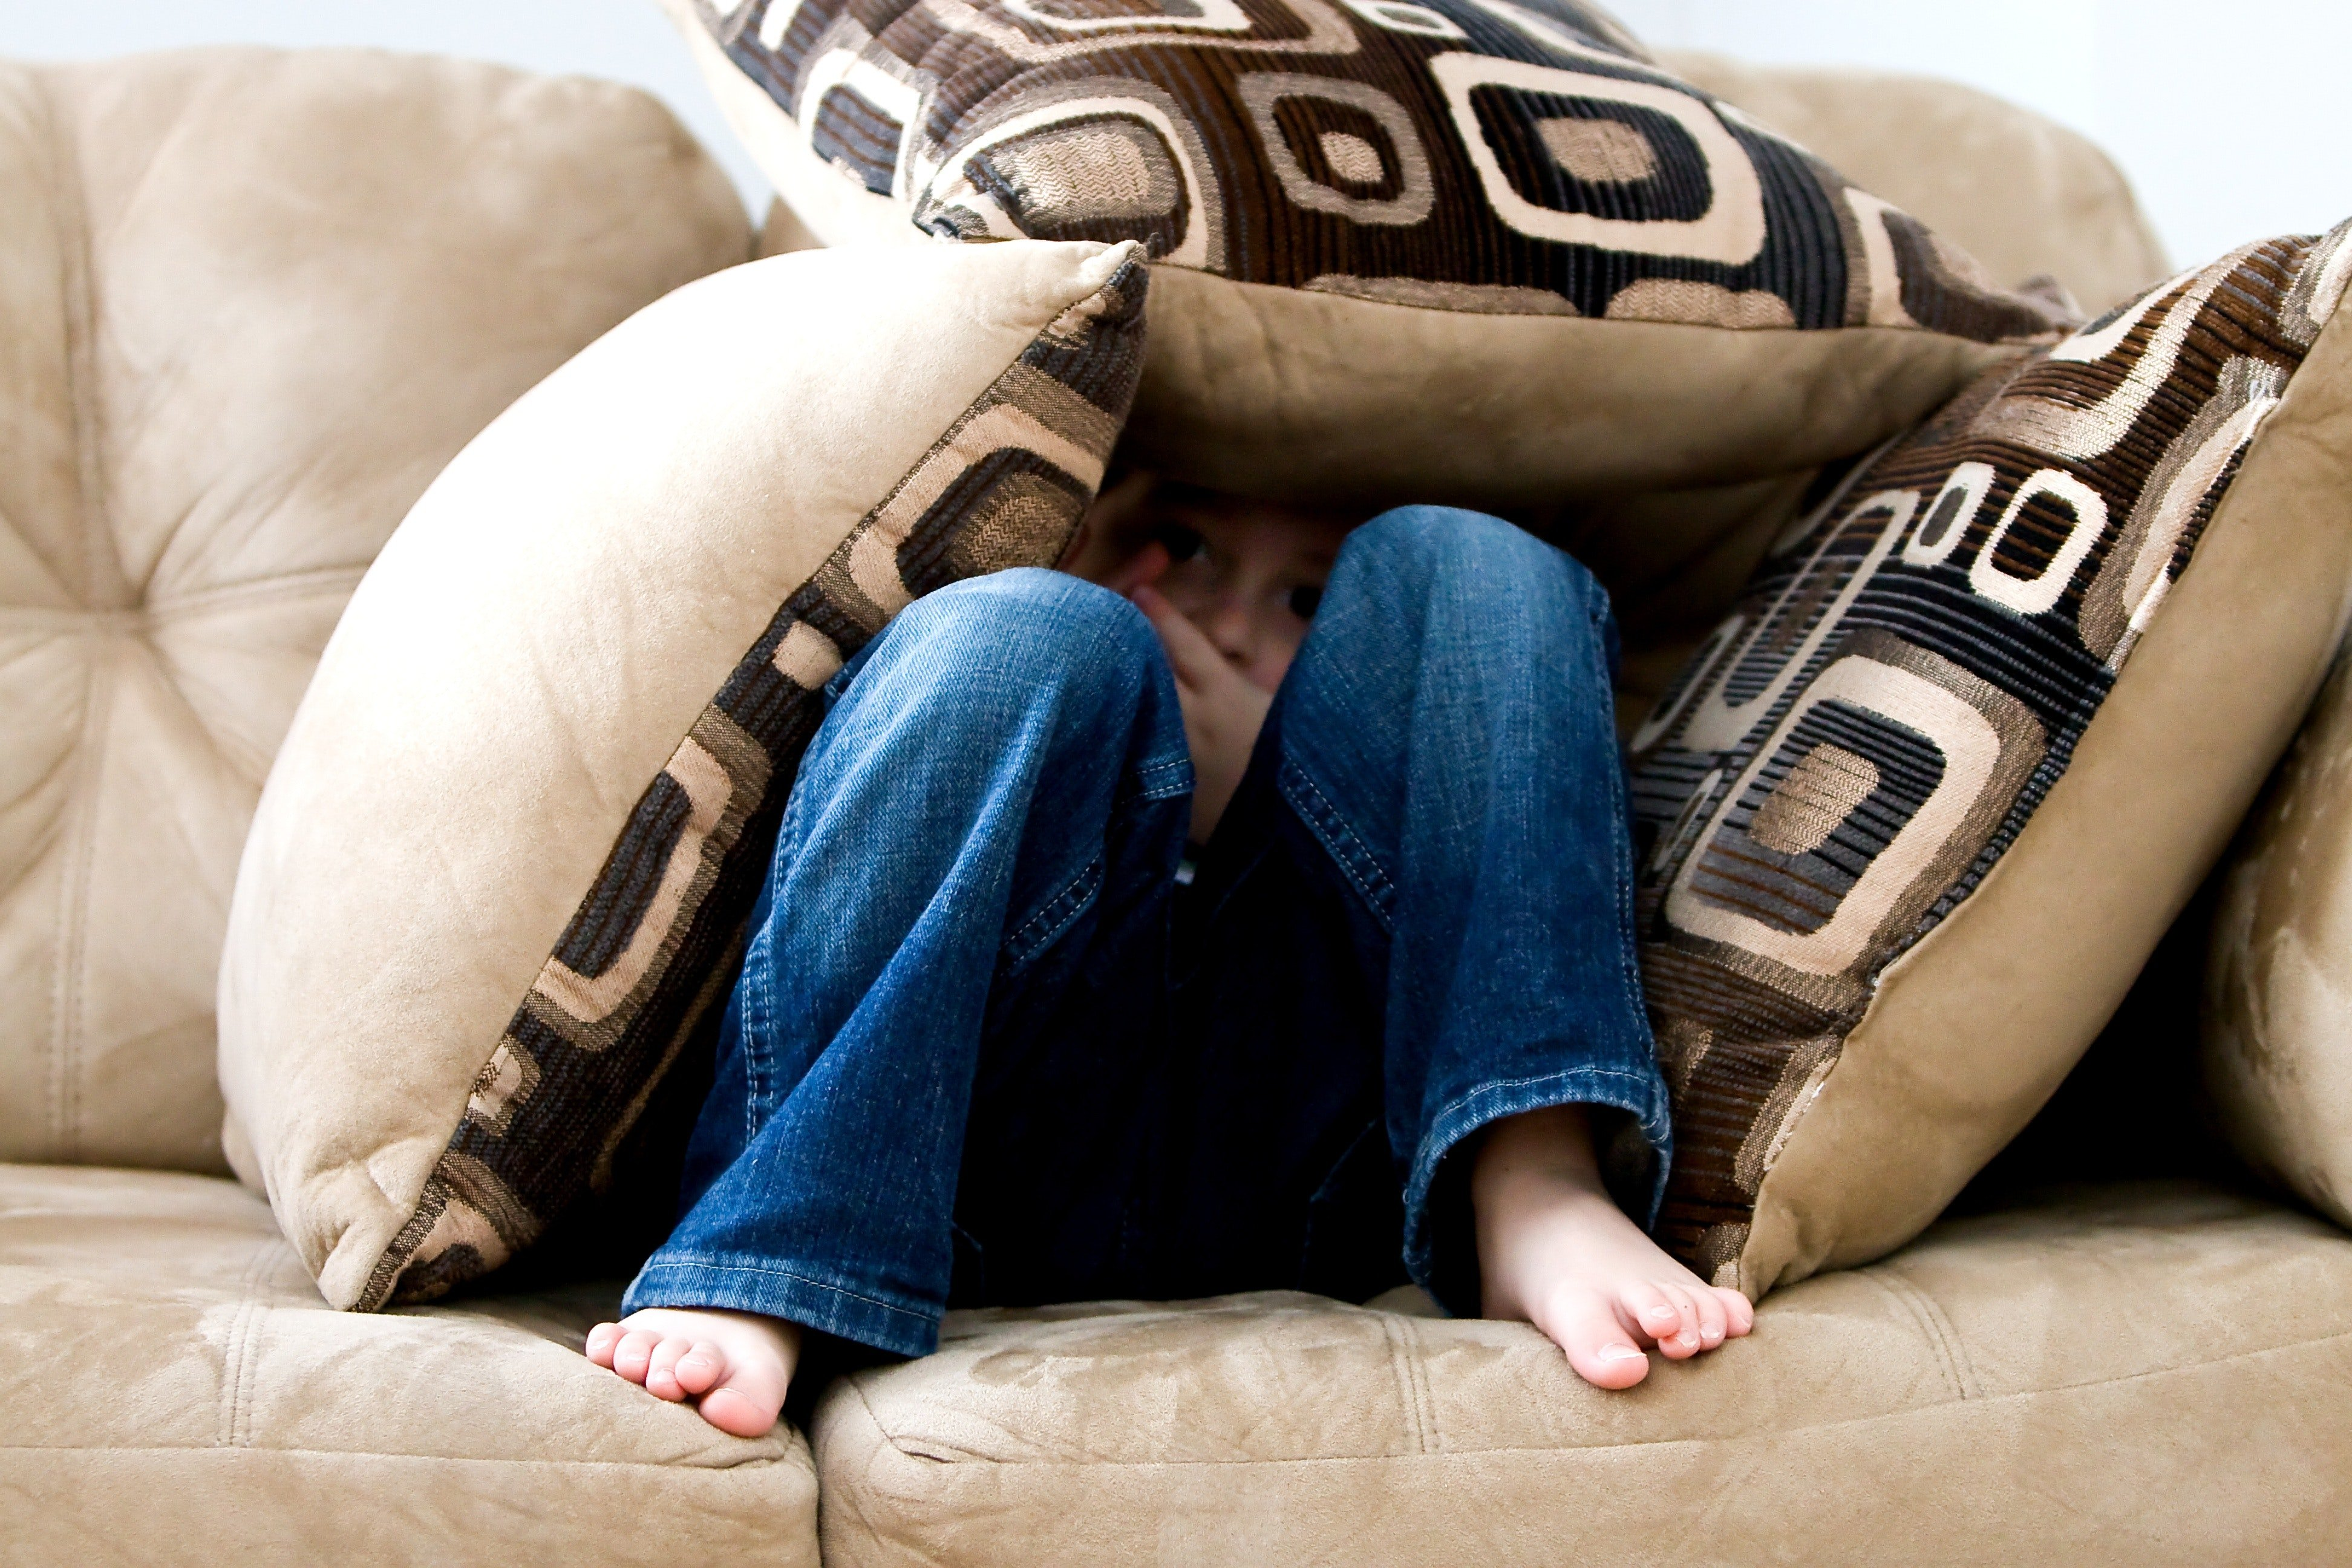 A young kid hides under the cushions of a couch.   Source: Pexels